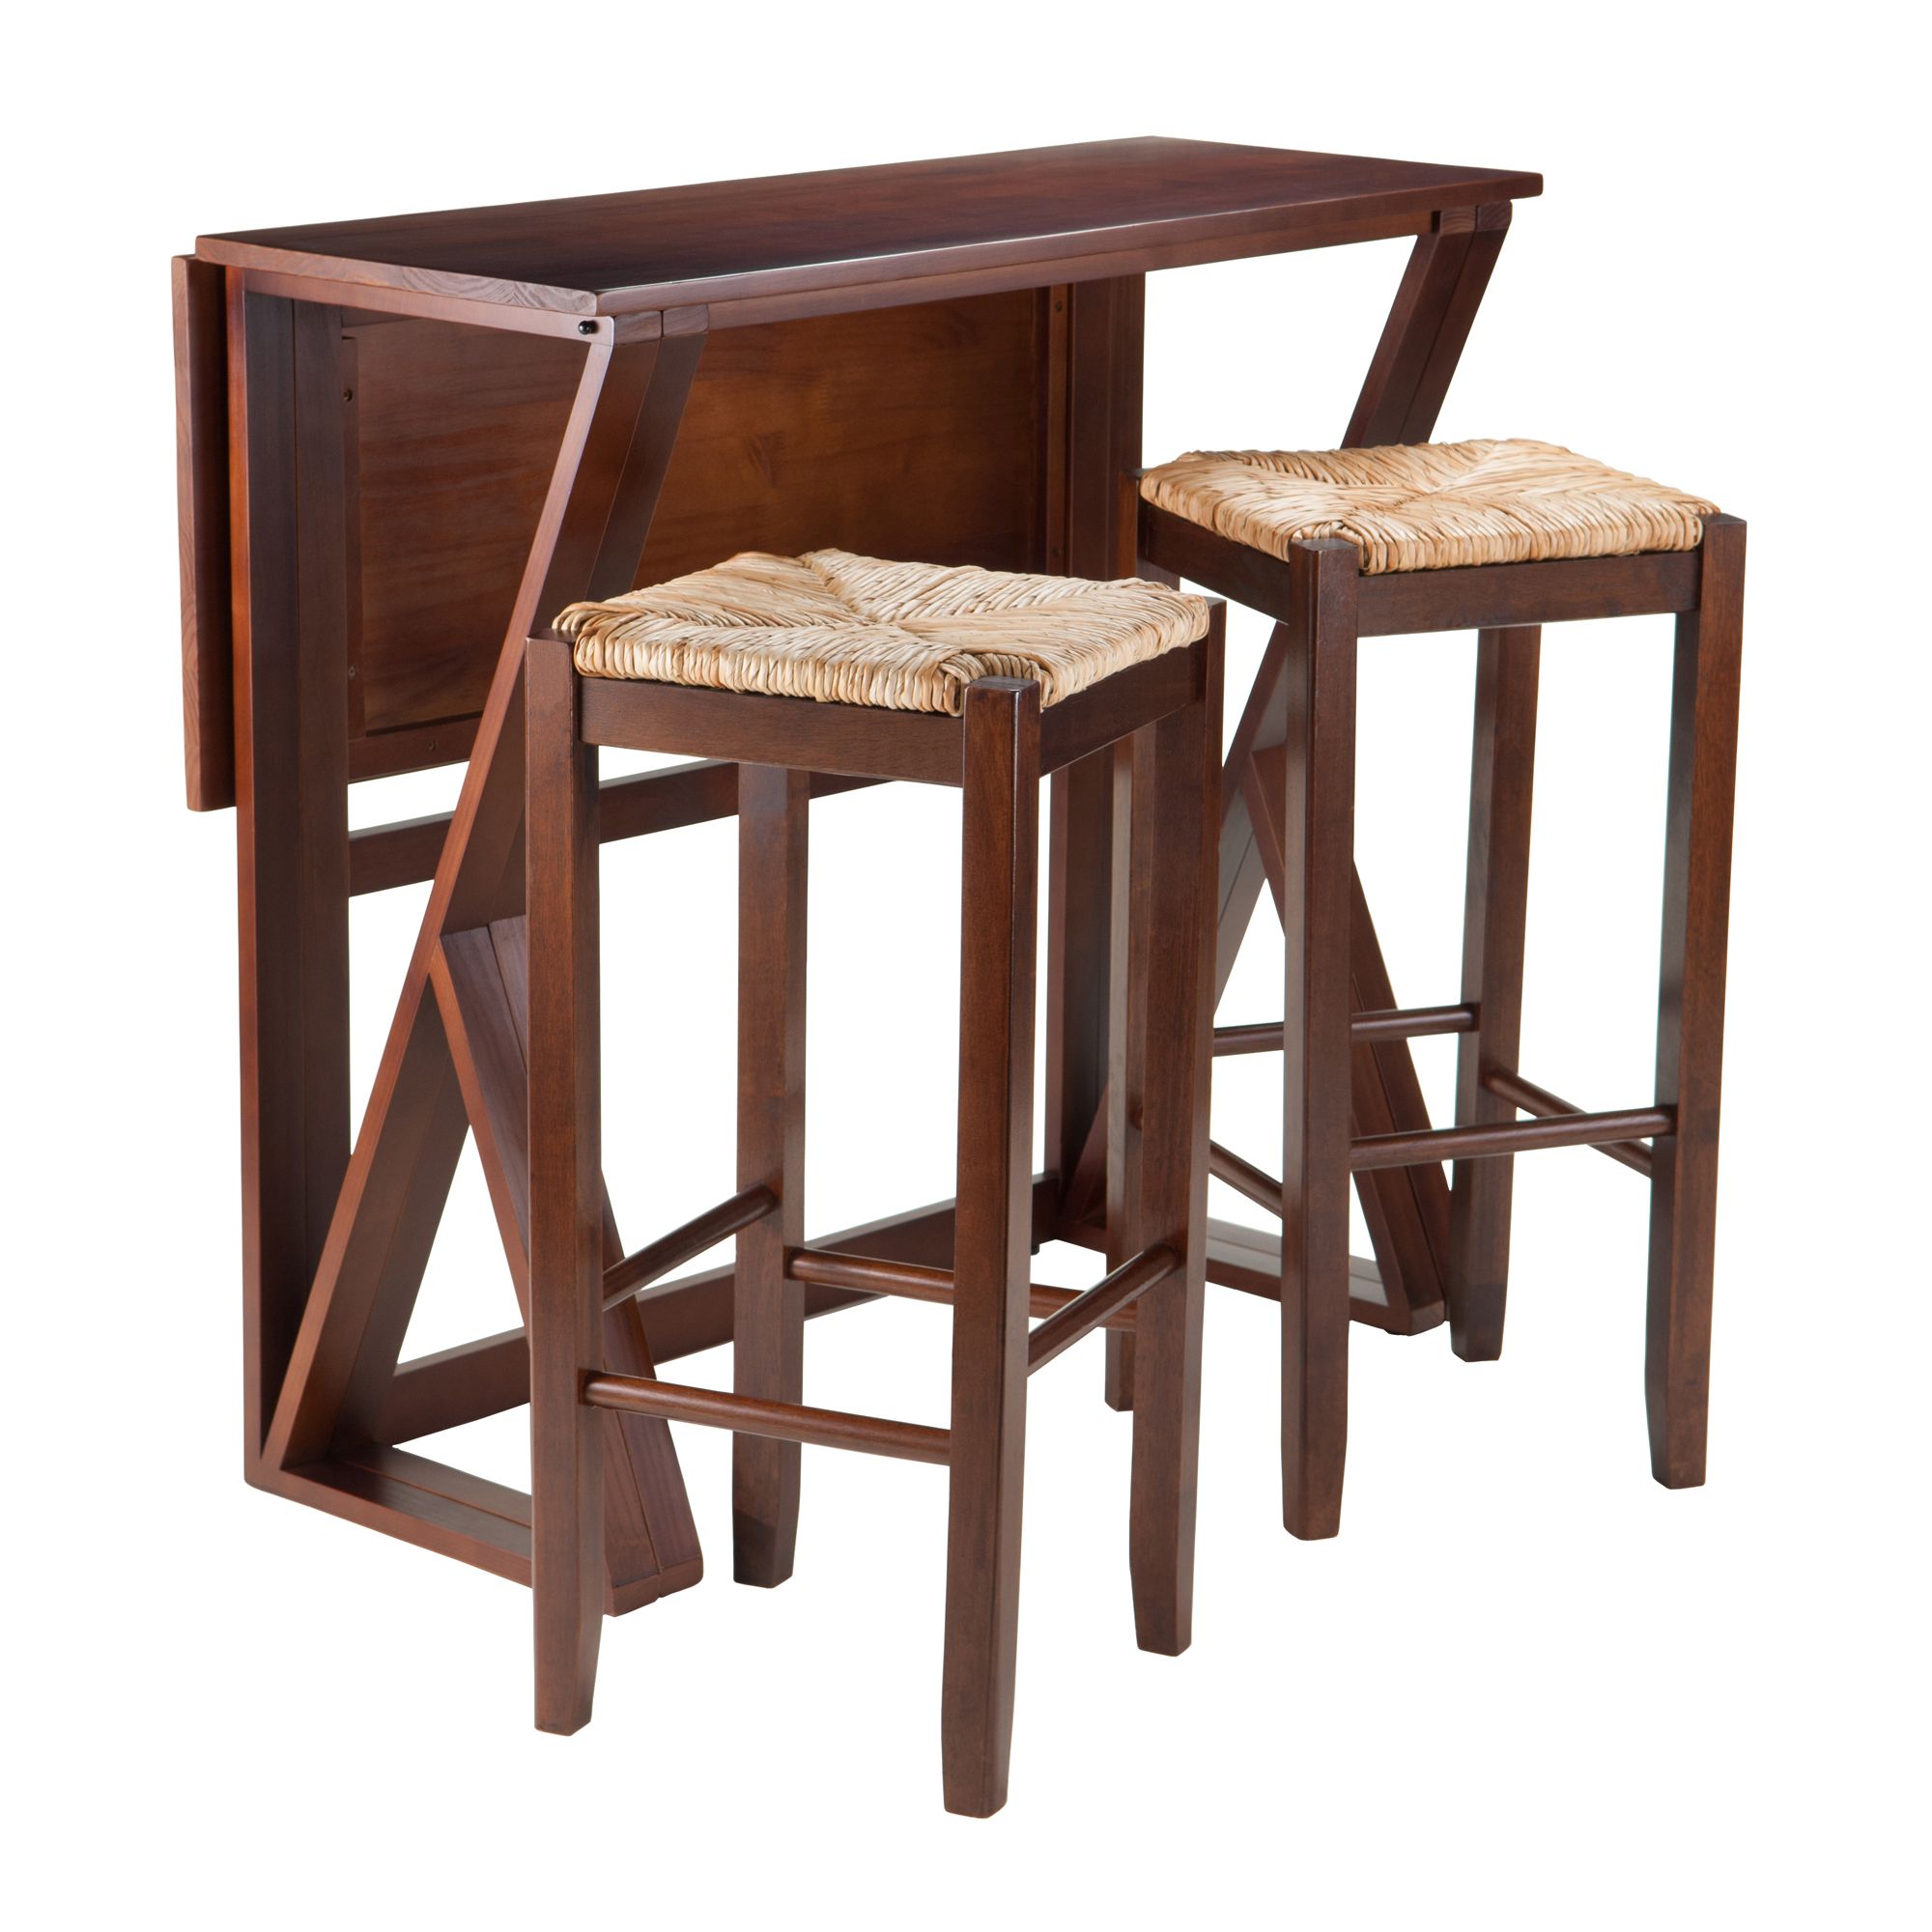 Winsome Wood Harrington 3 Piece Wood Dining Set With Drop Leaf Throughout Recent Transitional Antique Walnut Drop Leaf Casual Dining Tables (View 30 of 30)